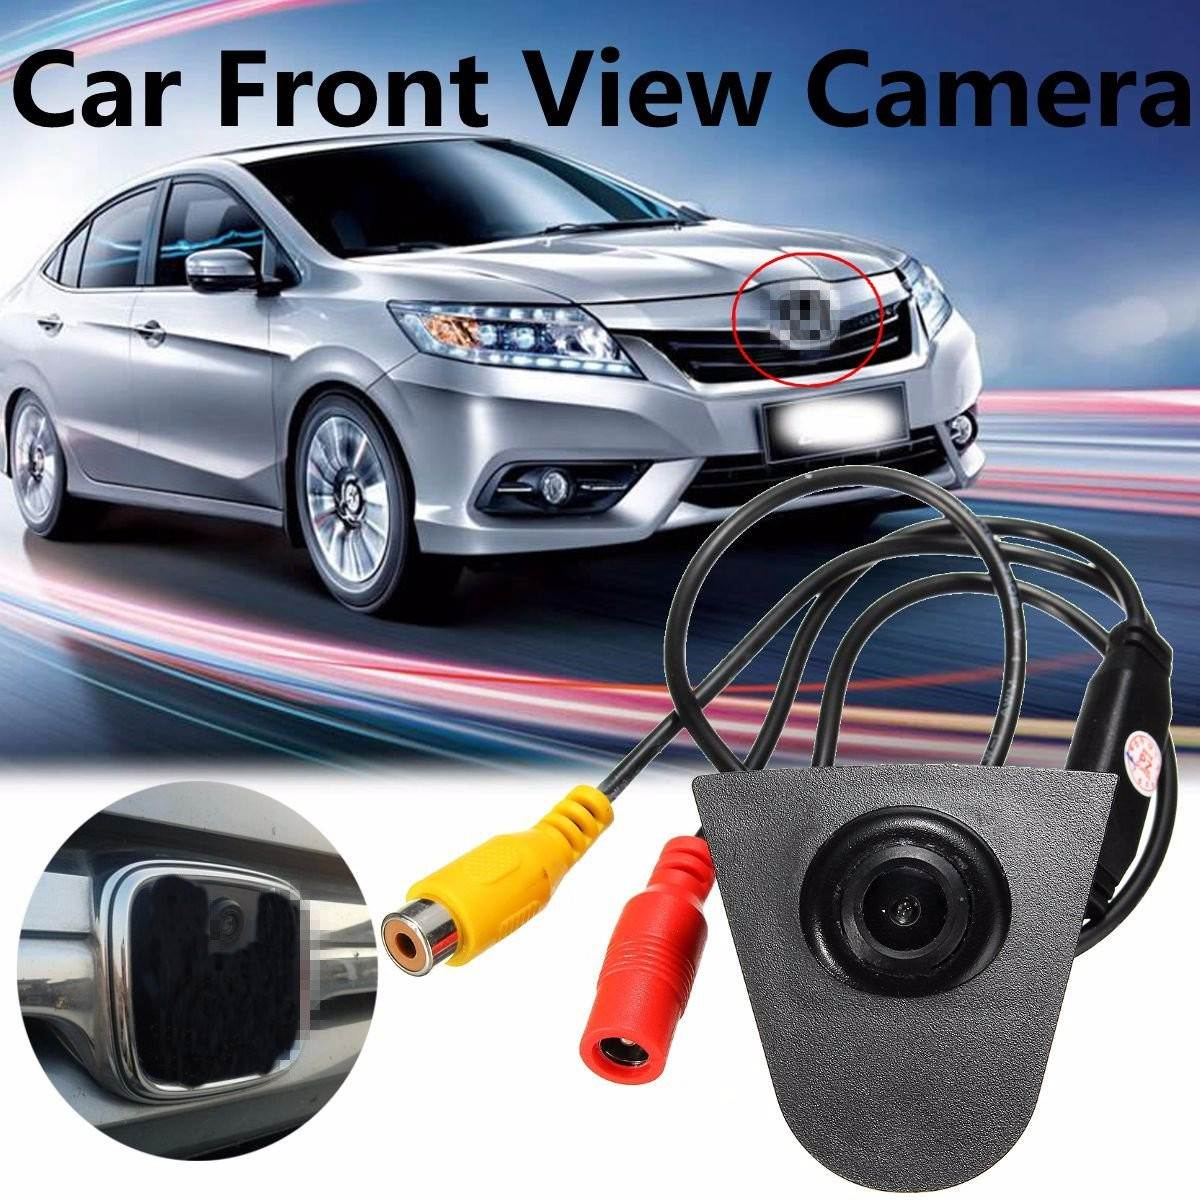 Car CCD Front Camera Rear View Camera Parking Assistance